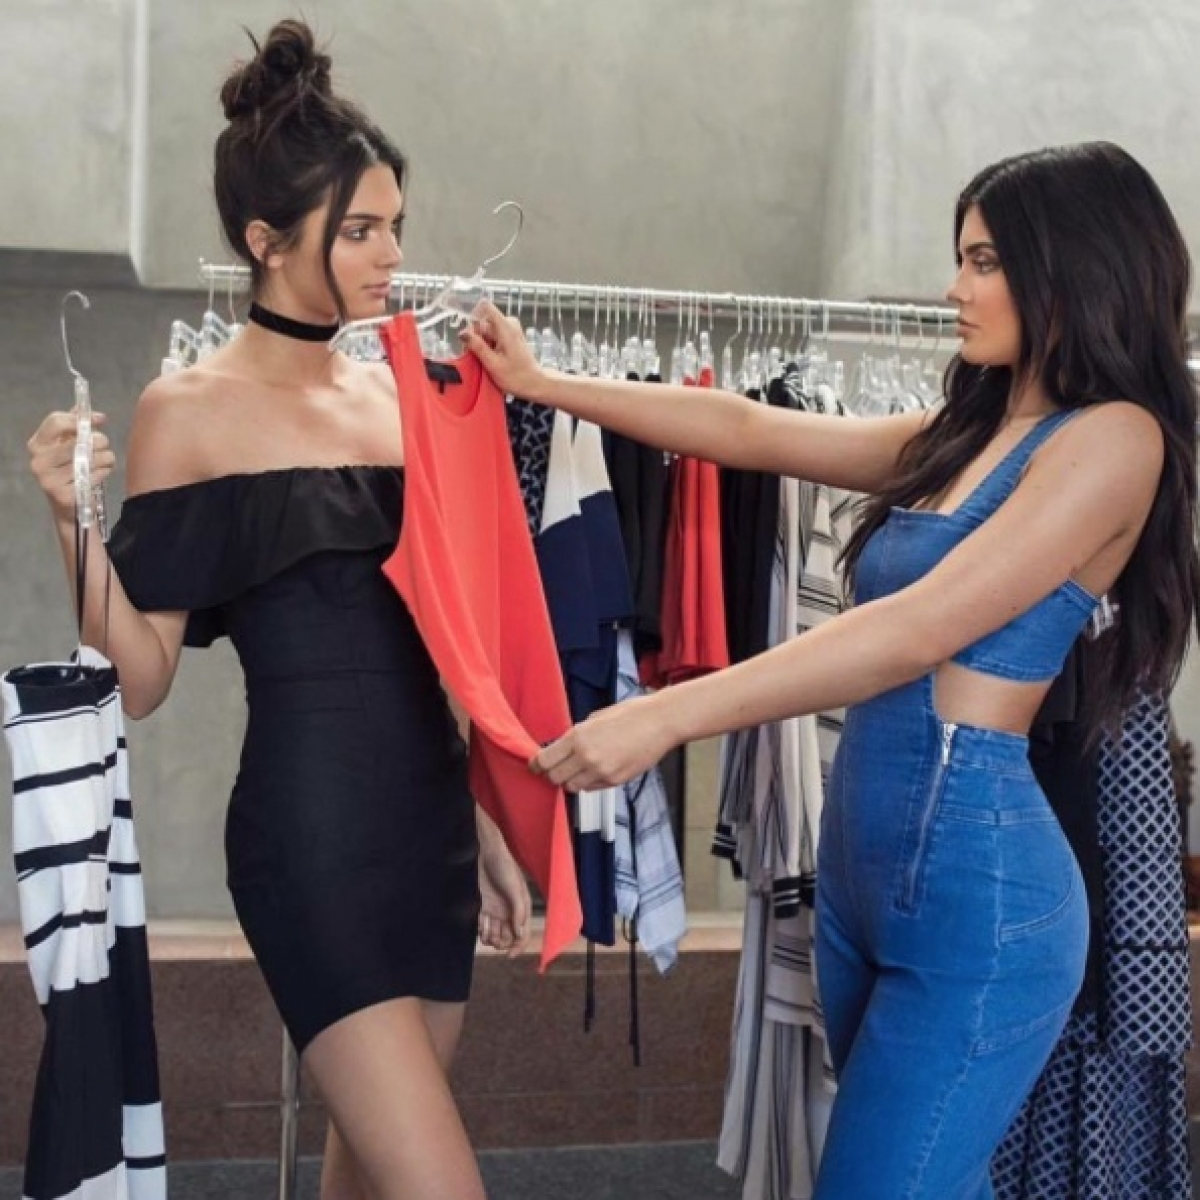 You won't believe where Kylie Jenner got her outfit from! Get all the details via @swavyapp